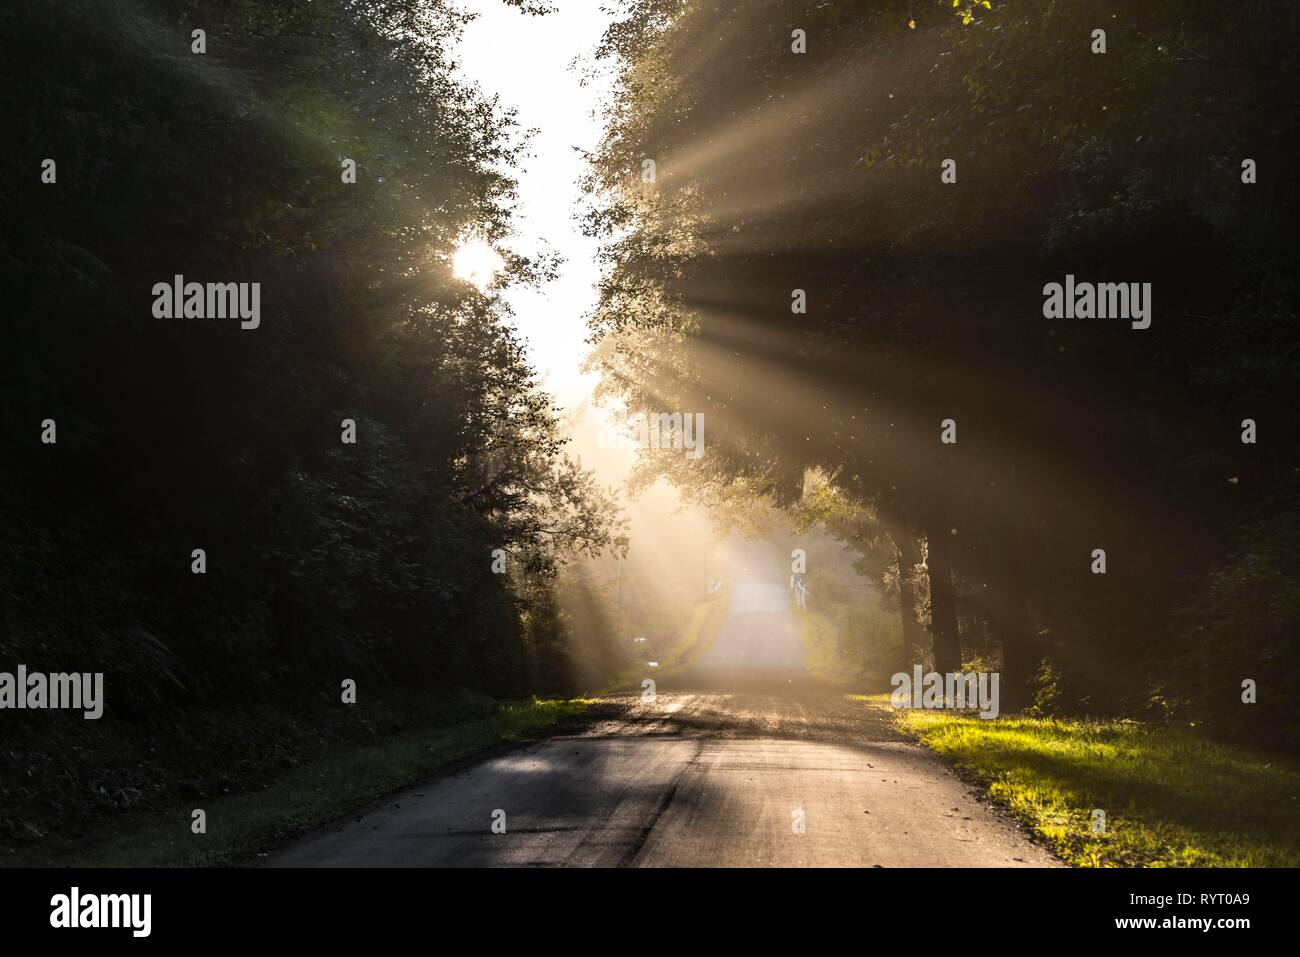 Sunlight shines through trees on a road, Oregon Coast Highway, Oregon, USA - Stock Image